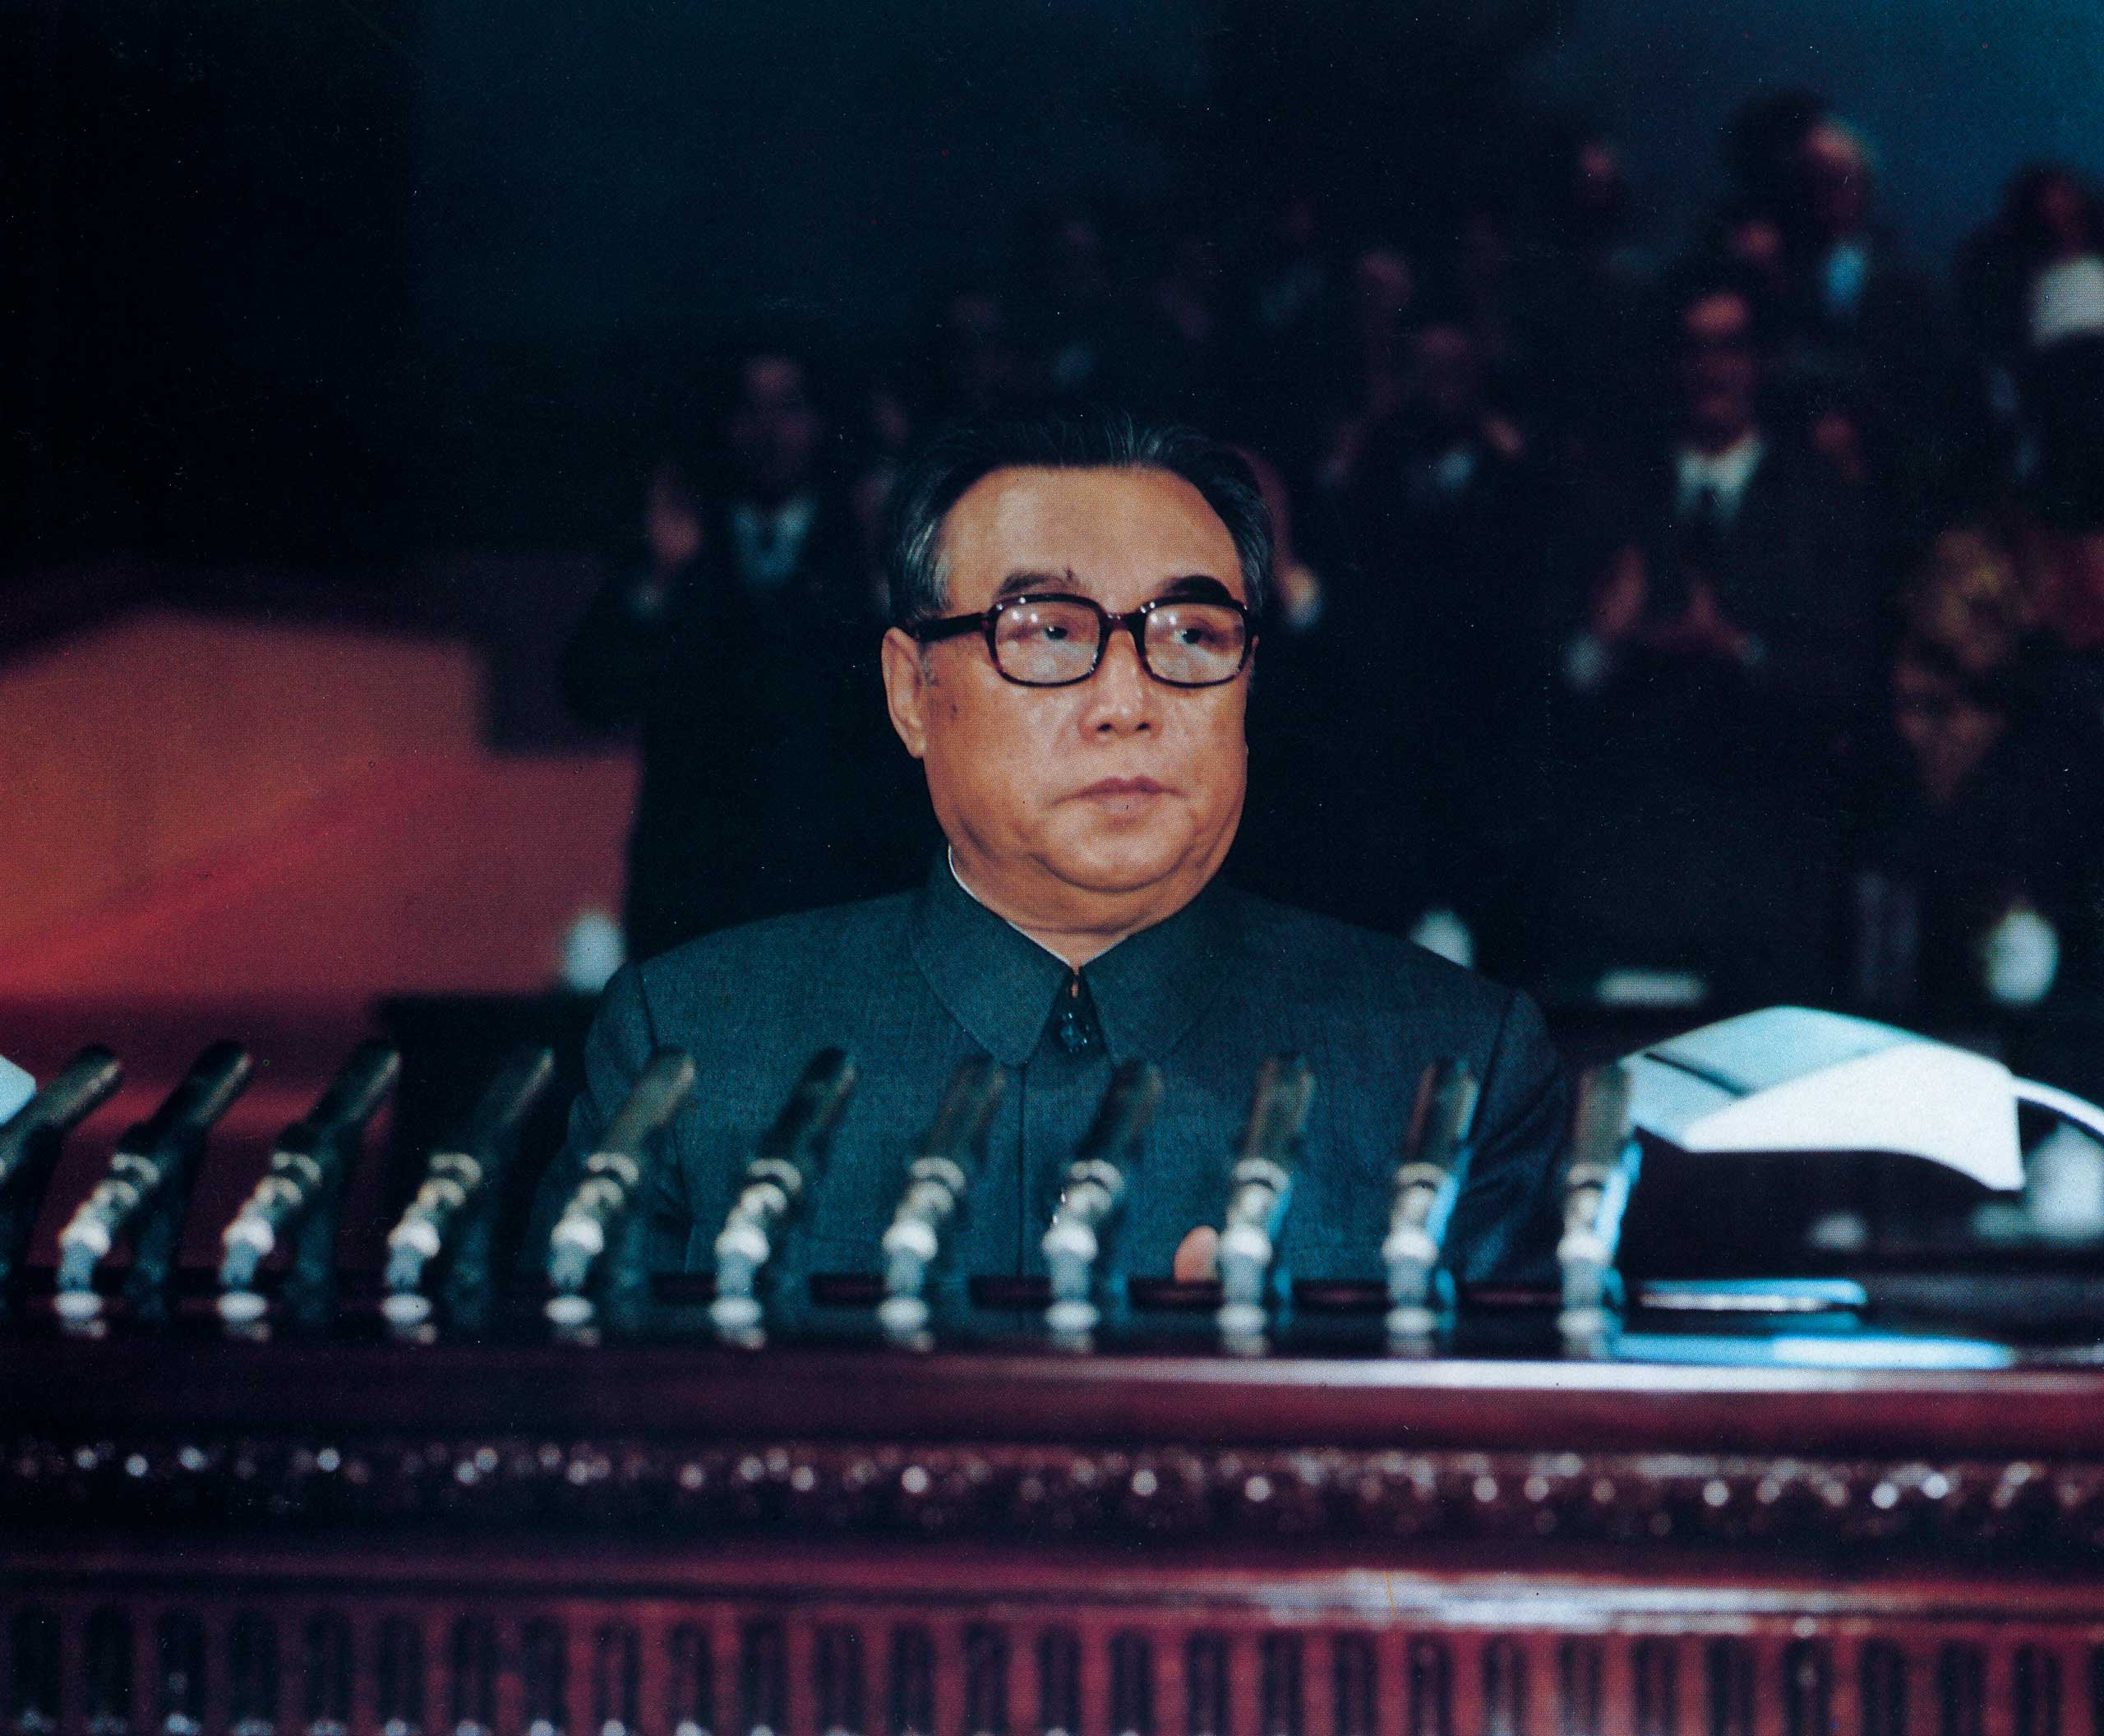 North Korea's founder Kim Il Sung in Pyongyang, Oct. 10, 1980.